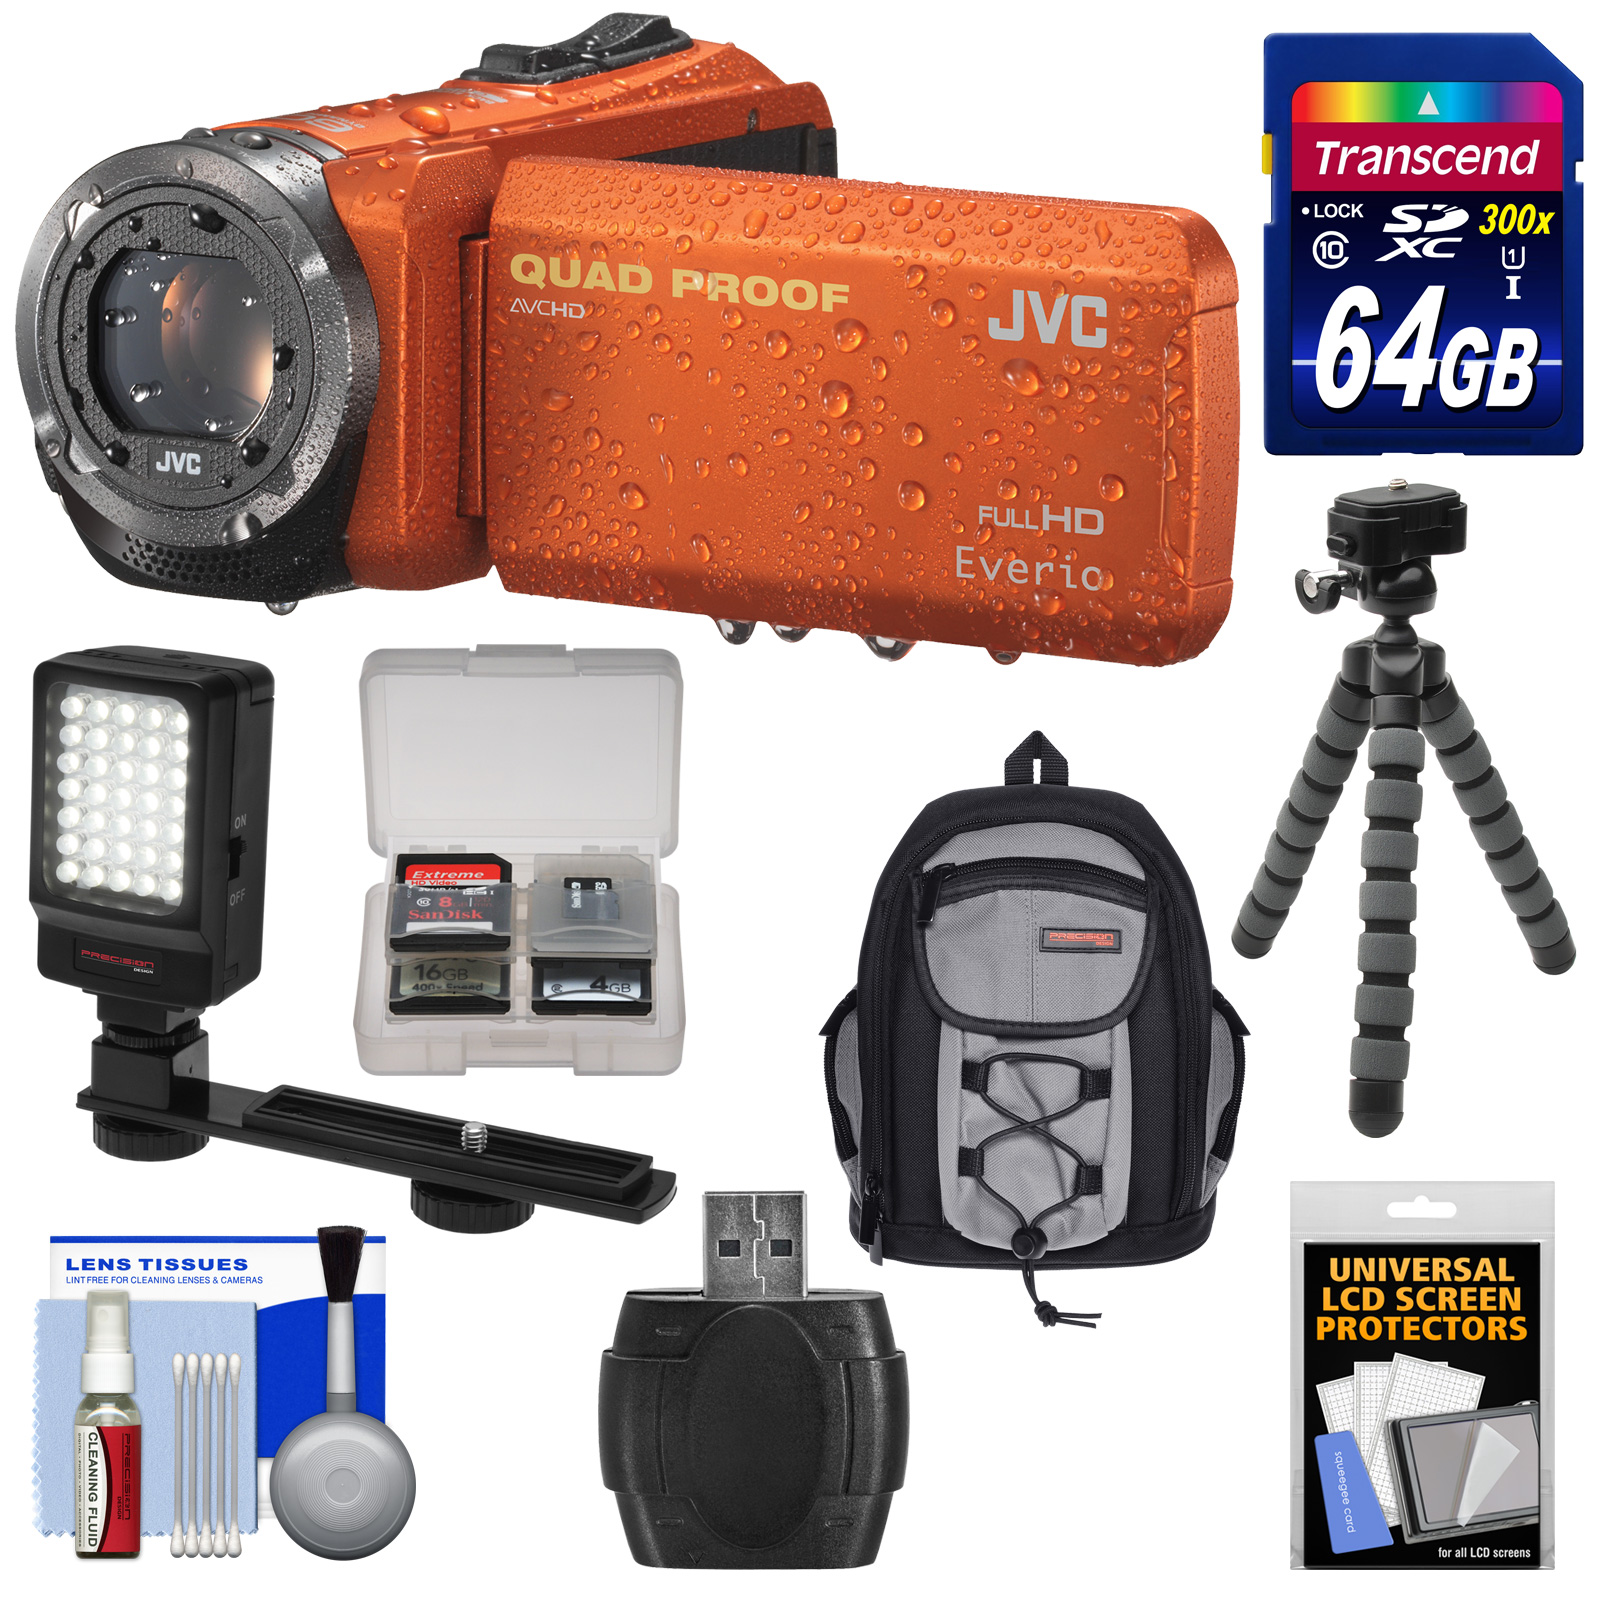 JVC Everio GZ-R320 Quad Proof Full HD Digital Video Camera Camcorder (Orange) with 64GB Card + Backpack Case + Flex Tripod + LED Light + Kit